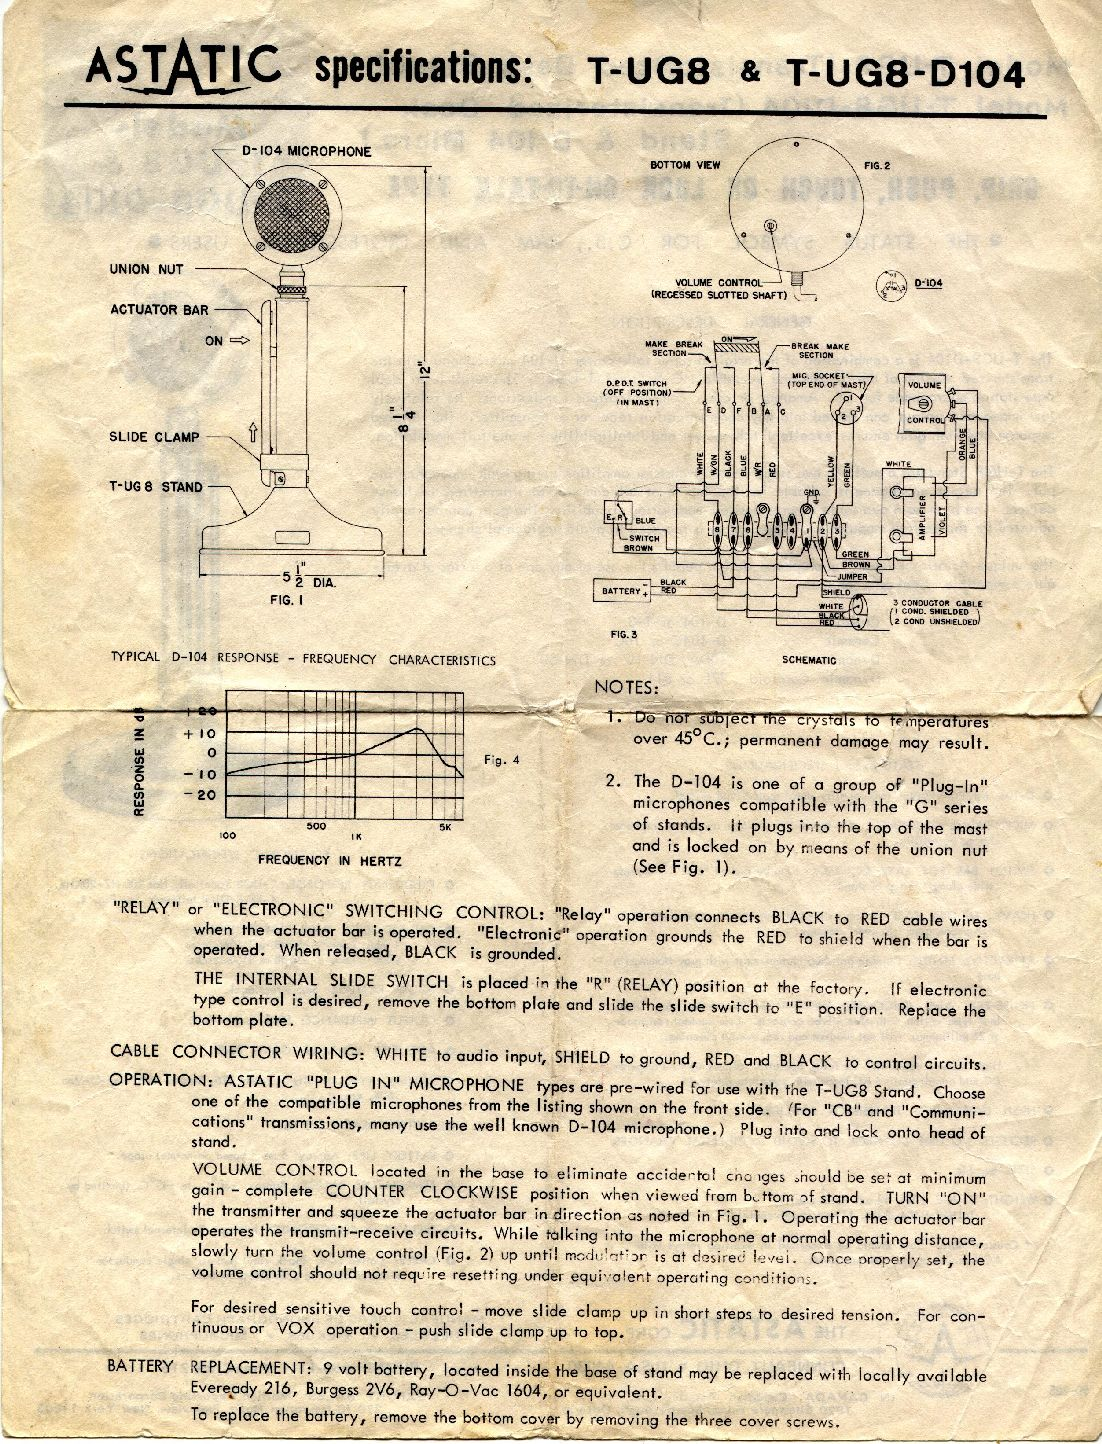 sennheiser microphone wiring diagram a 1960's astatic d-104 mic in the 21'st century – a real ... d104 microphone wiring diagram